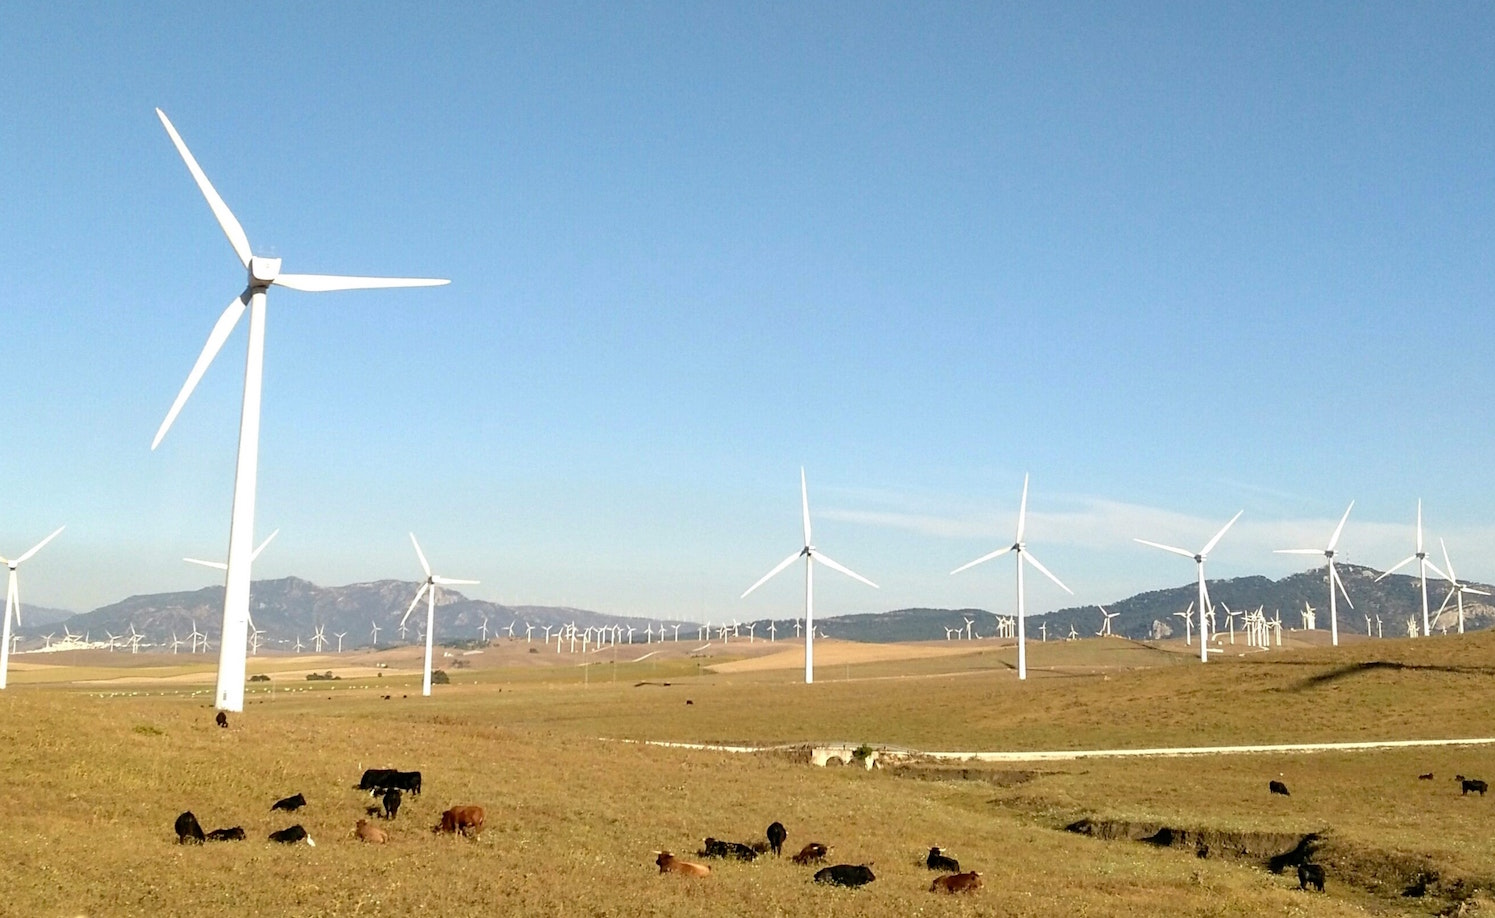 Wind turbines and a herd of cattle